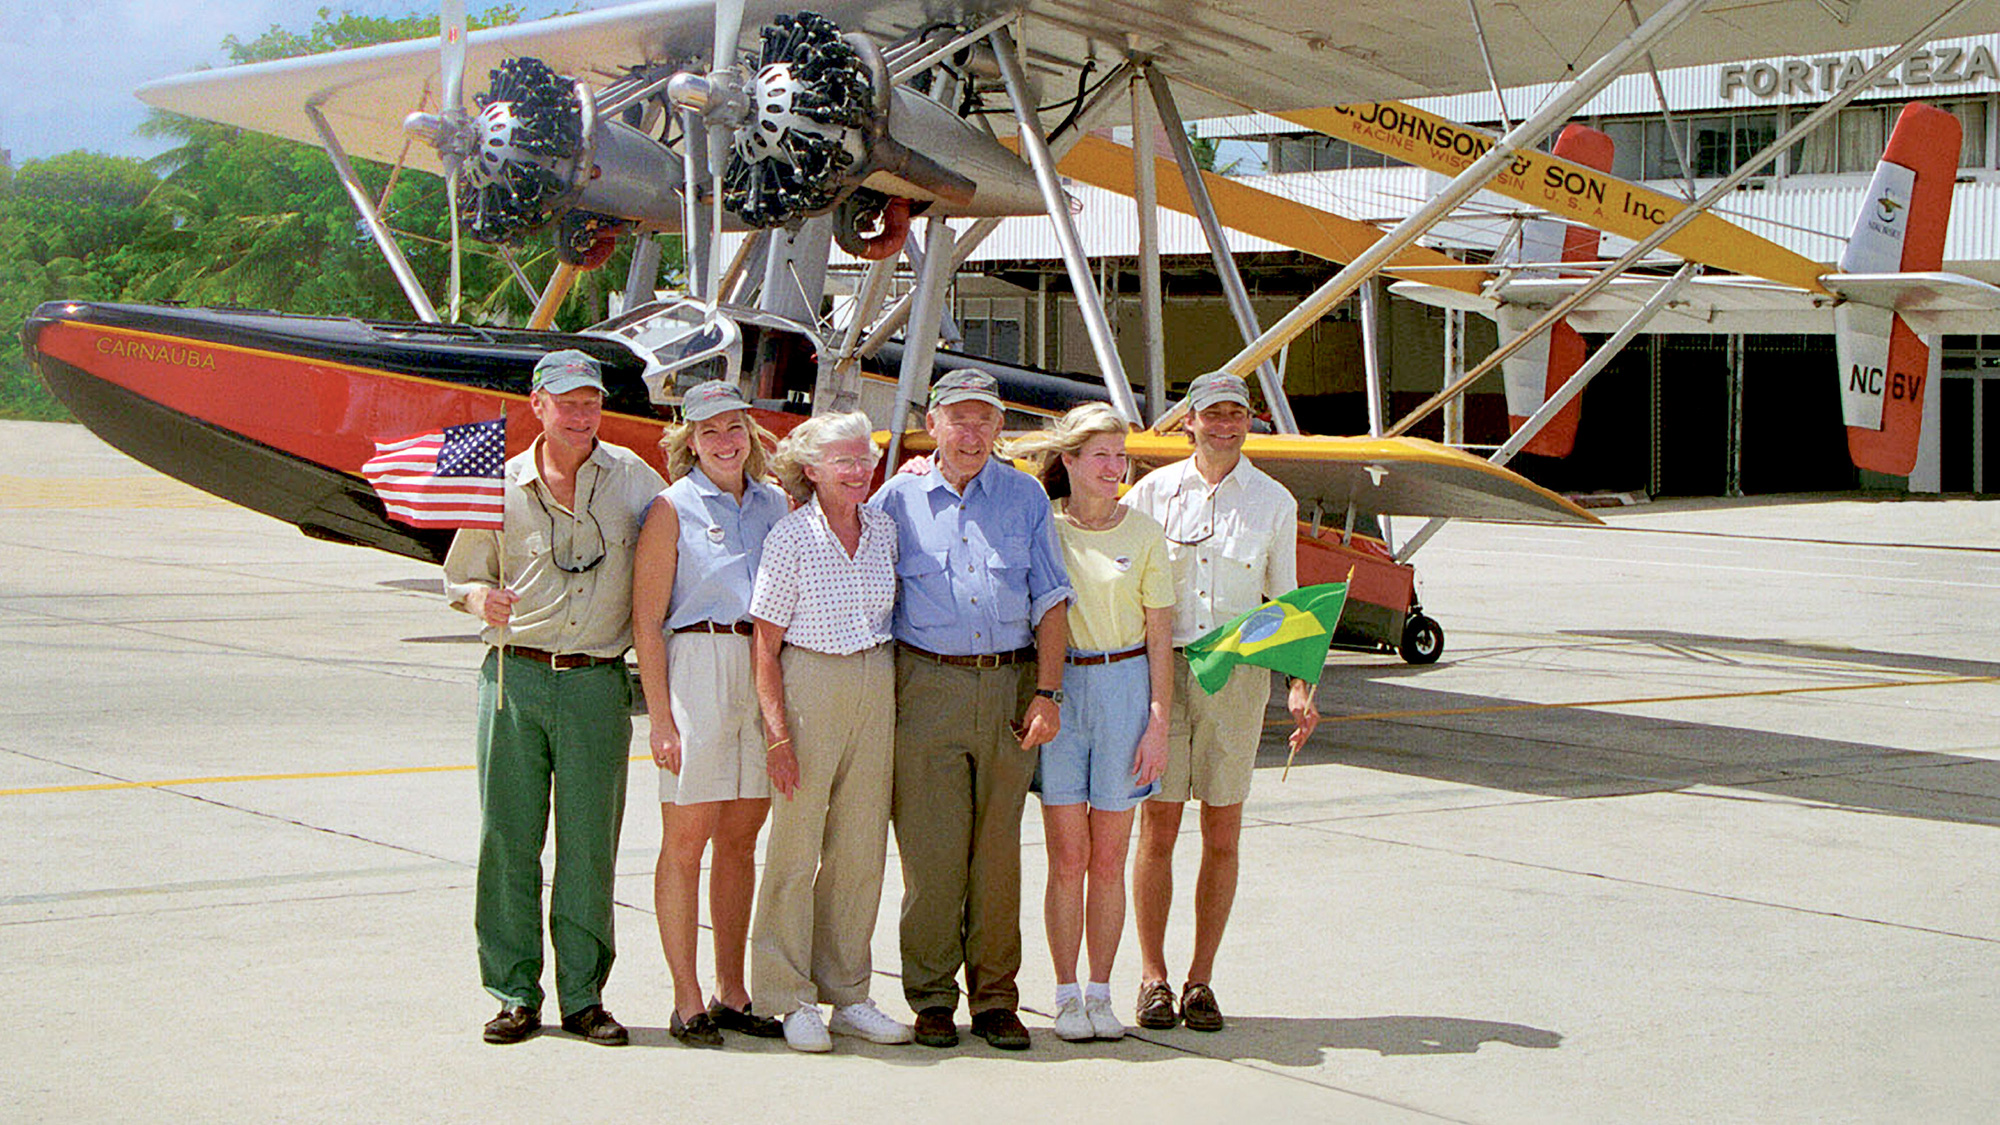 Gene Johnson mit der Familie Johnson in Brasilien